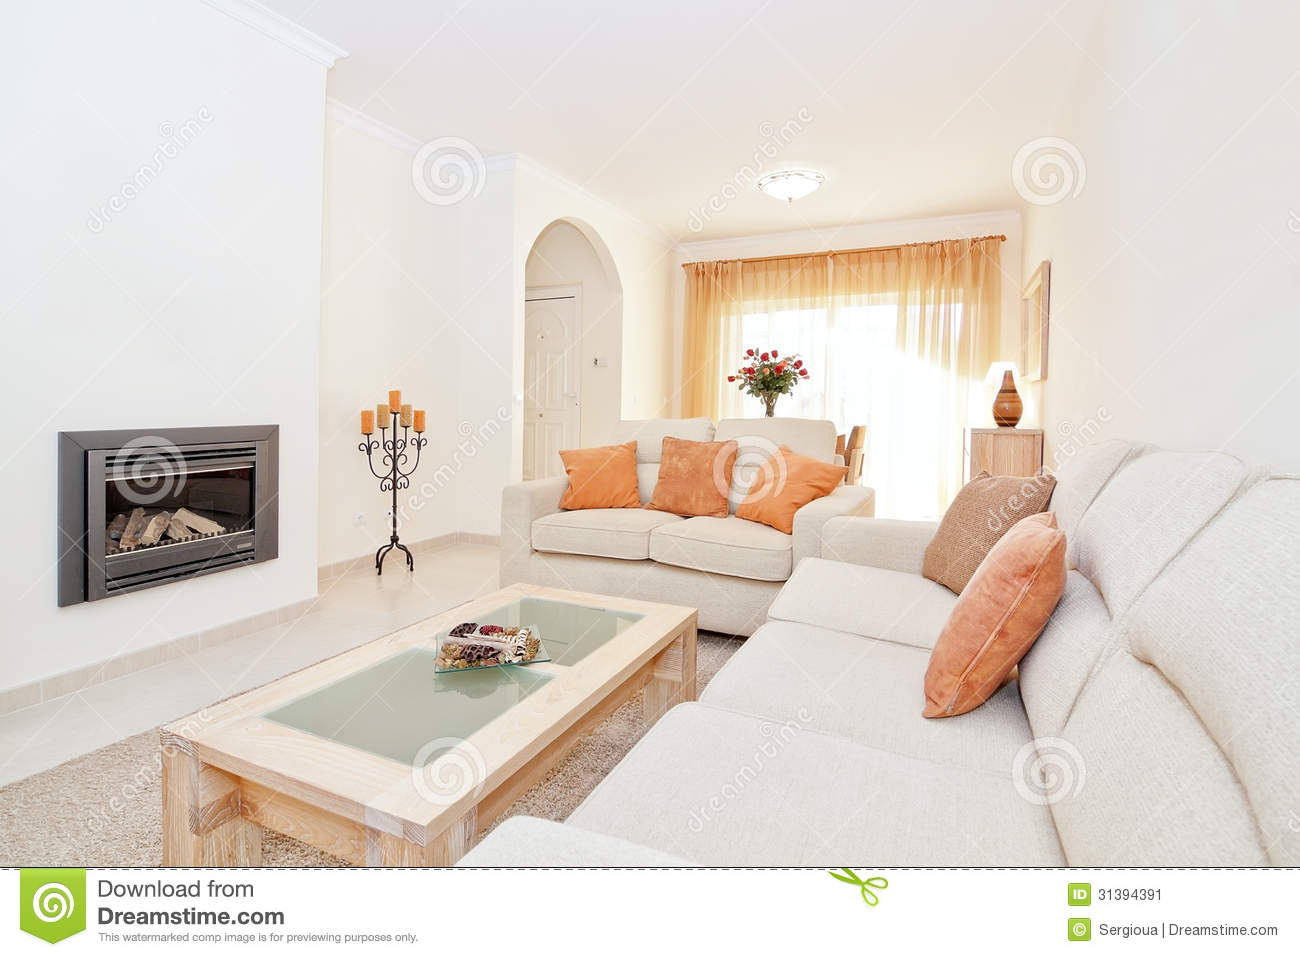 Bright modern living room with a fireplace for heating stock image image 31394391 - Contemporary fireplace insert for a warm living room ...